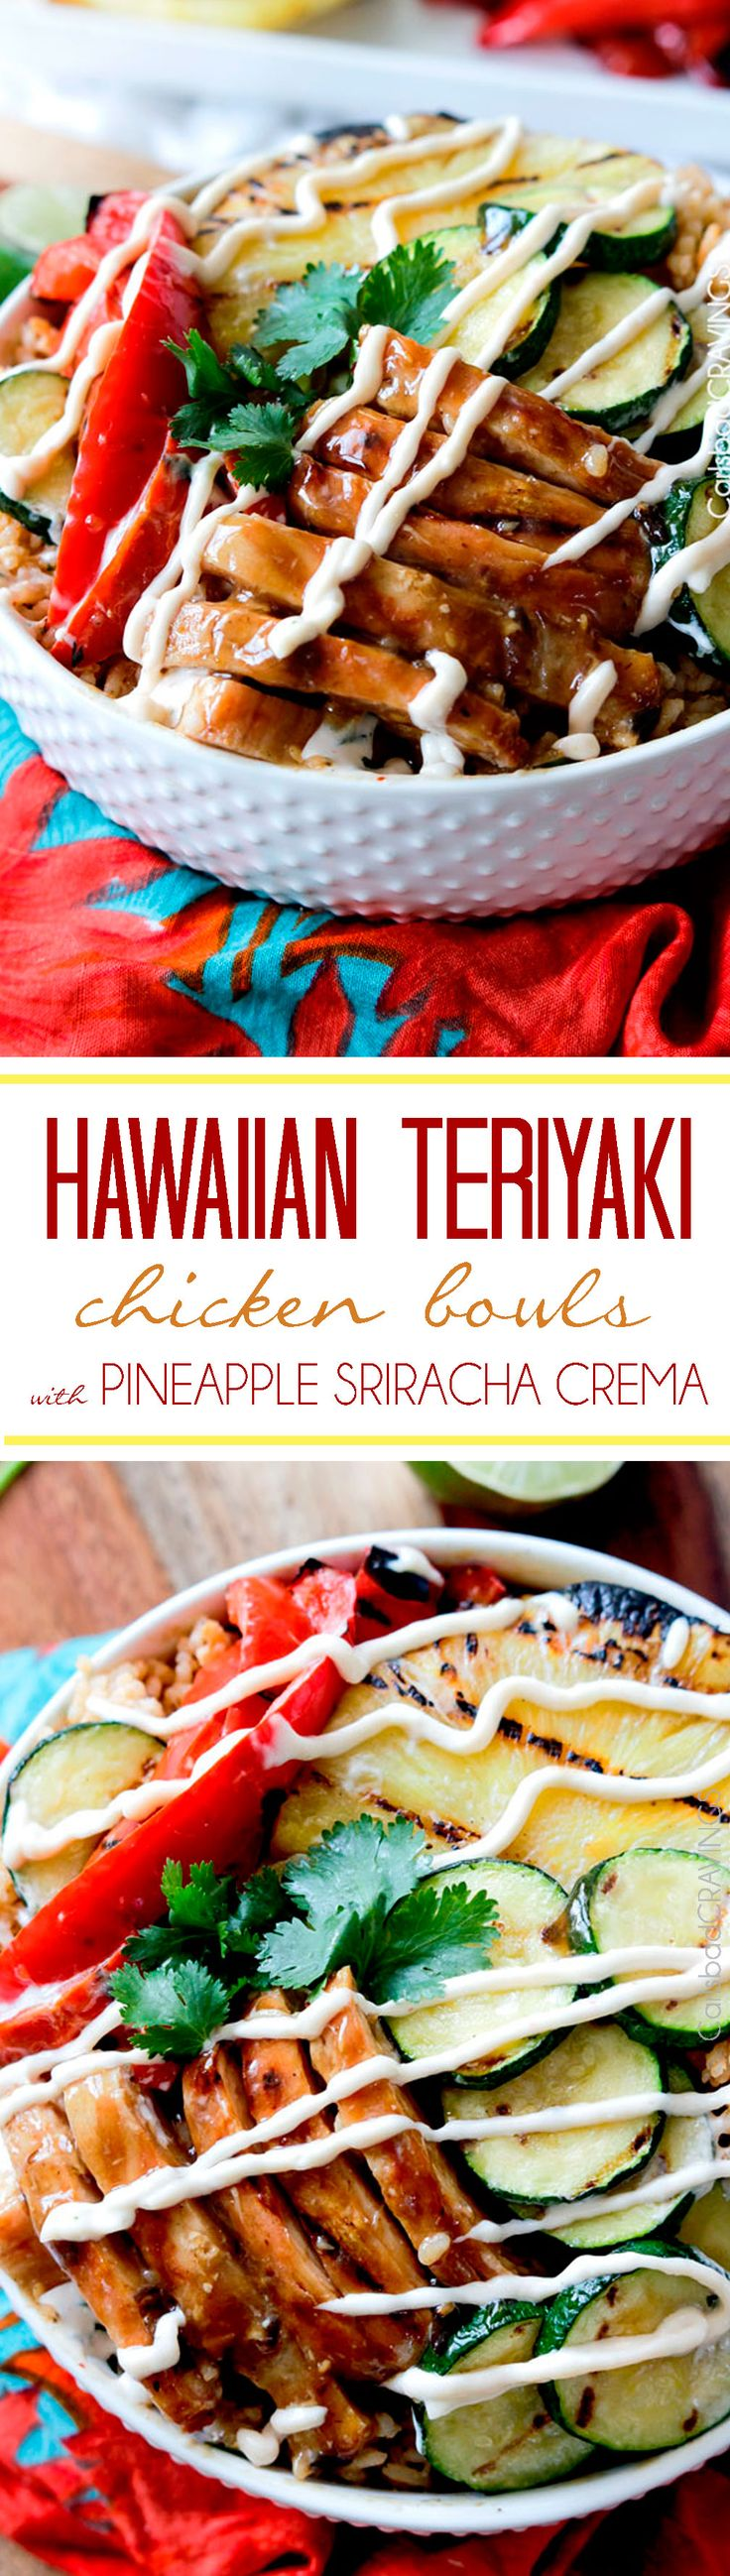 Grilled Hawaiian Teriyaki Chicken Bowls